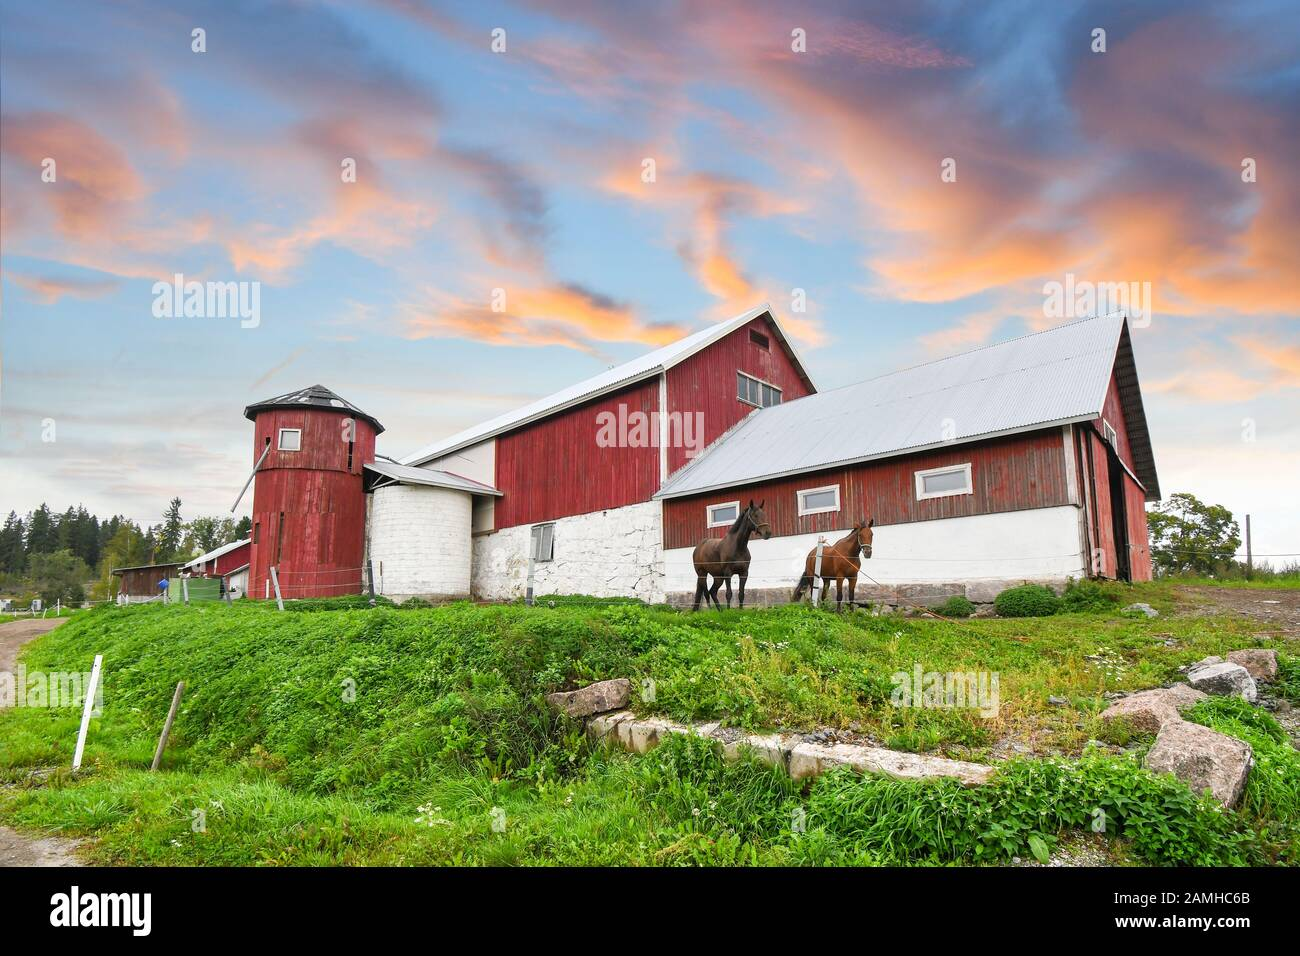 Two horses stand together outside a large red barn and silo in the countryside under a colorful sunset sky. Stock Photo